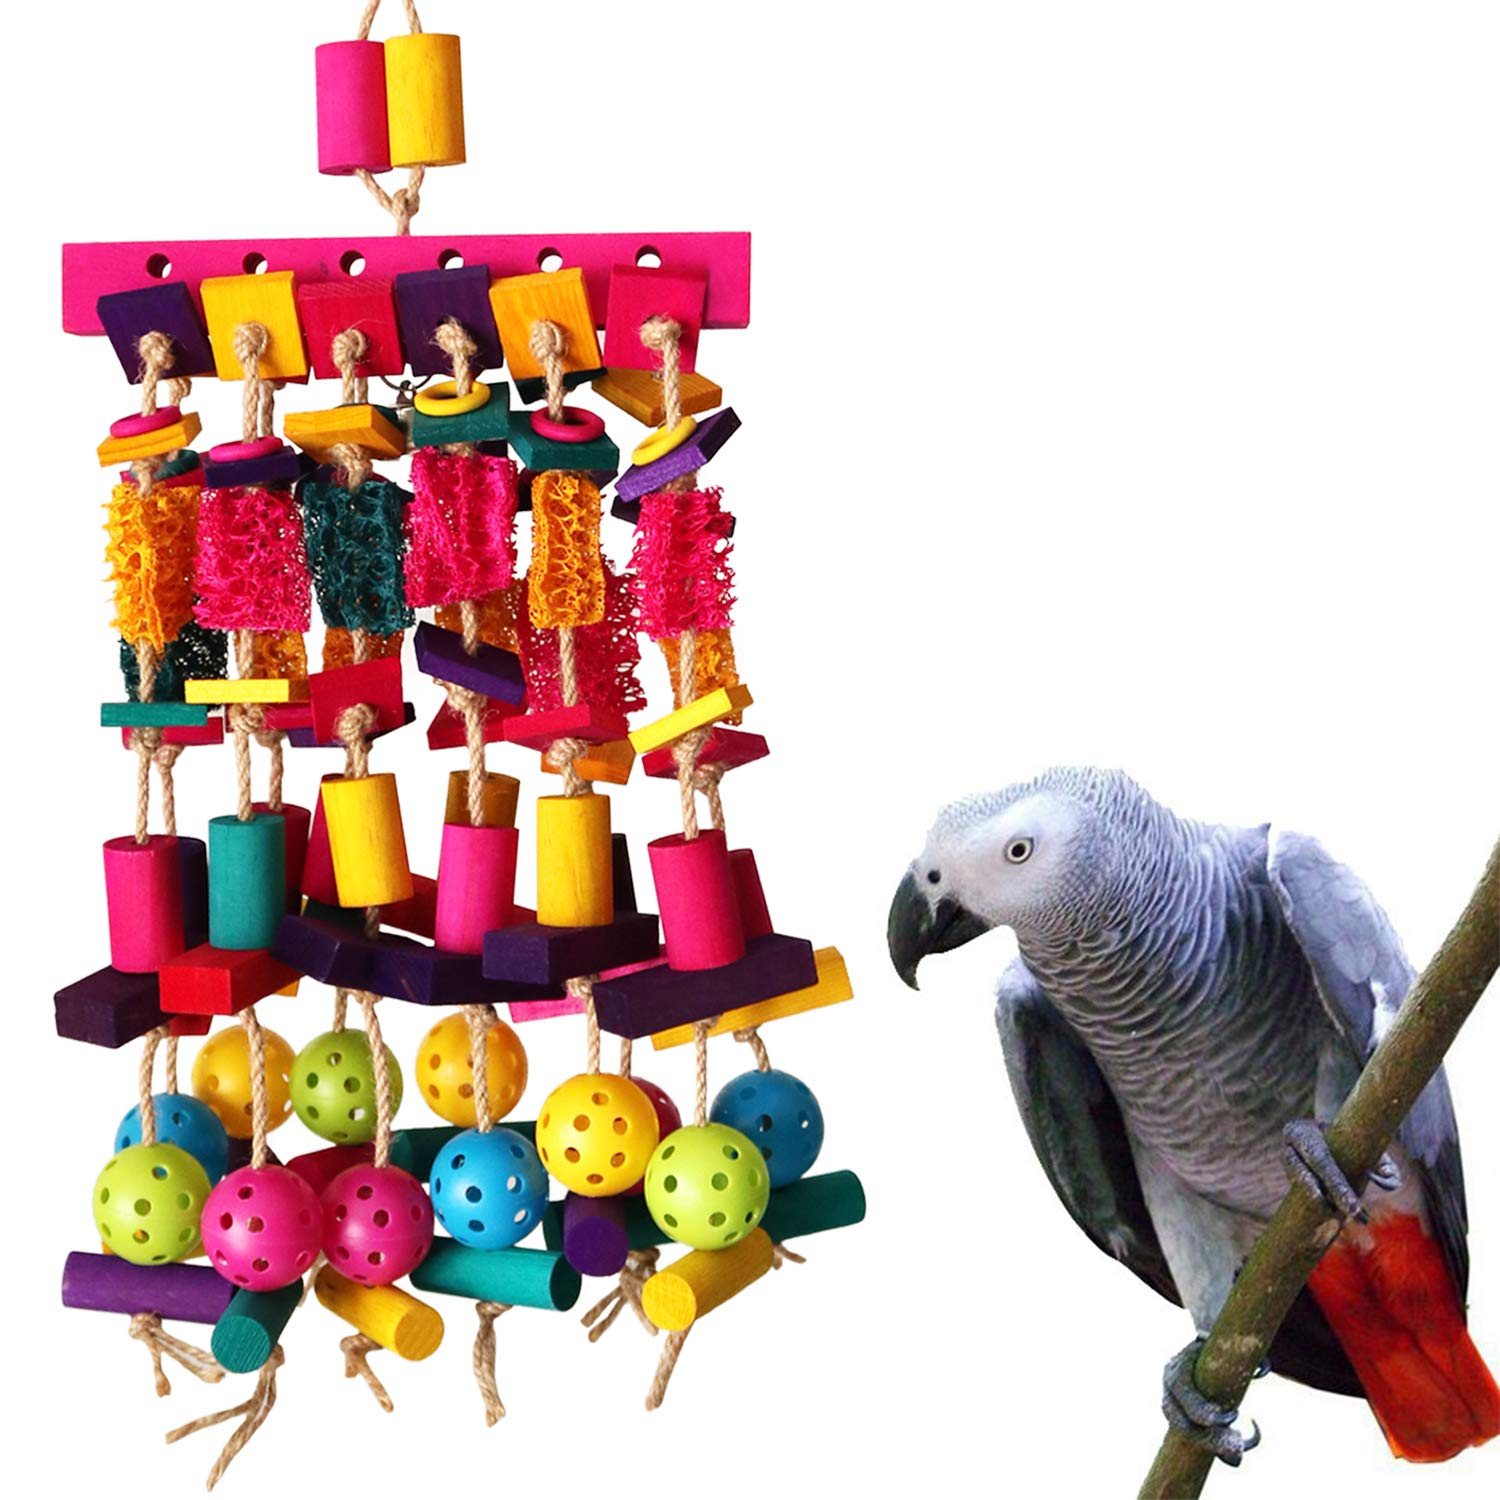 RYPET Large Parrot Chewing Toy - Multicolored Wooden Blocks & Natural Loofah Heavy Duty Bite Bird Toys for African Grey, Macaws and Similar Large Medium-Sized Amazon Parrots by RYPET